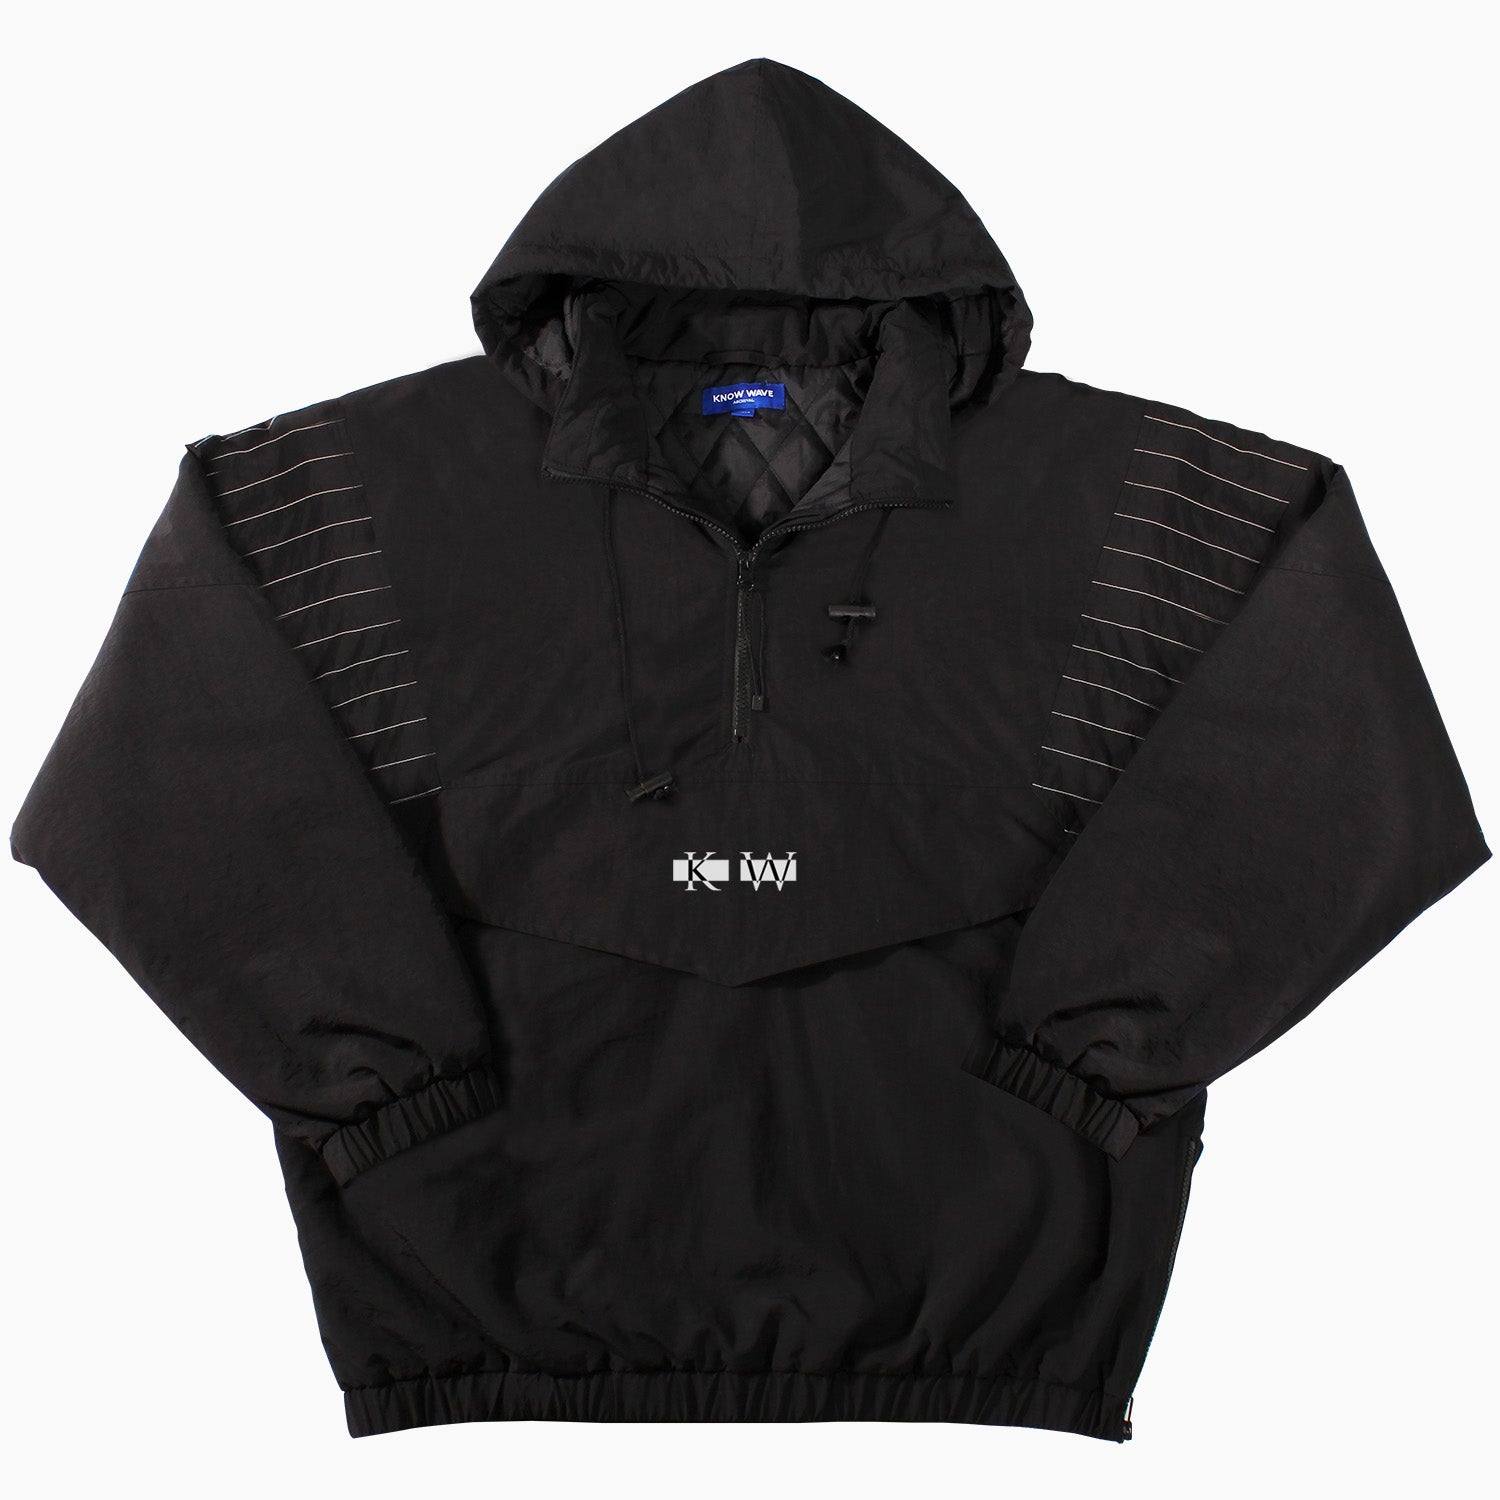 INITIAL PUFF PULLOVER JACKET